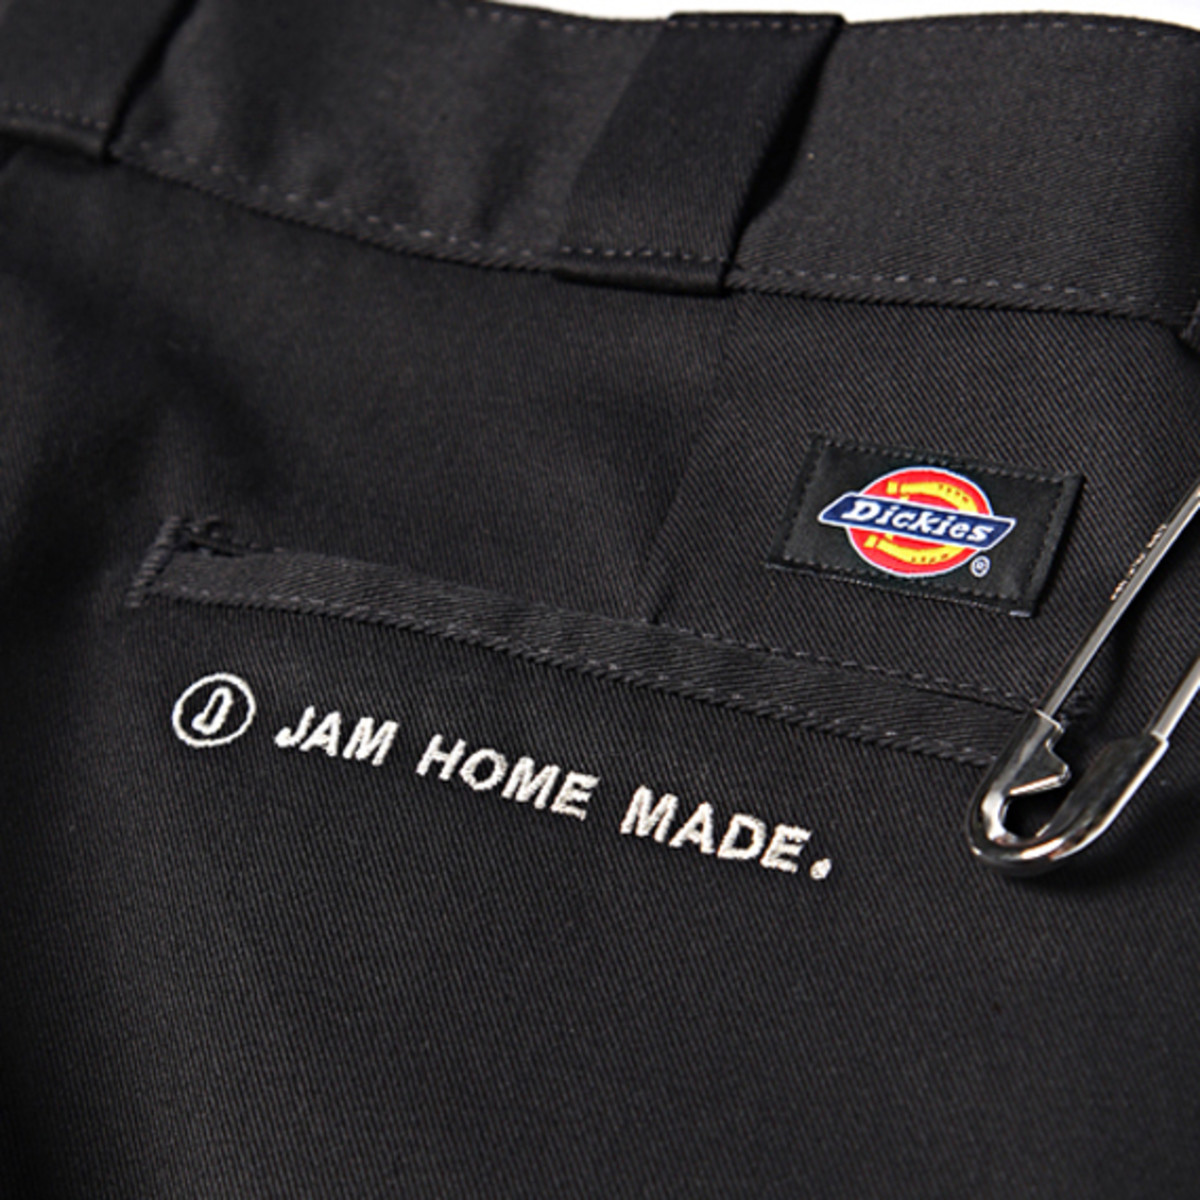 jam-home-made-dickies-customized-jodhpurs-work-pants-08